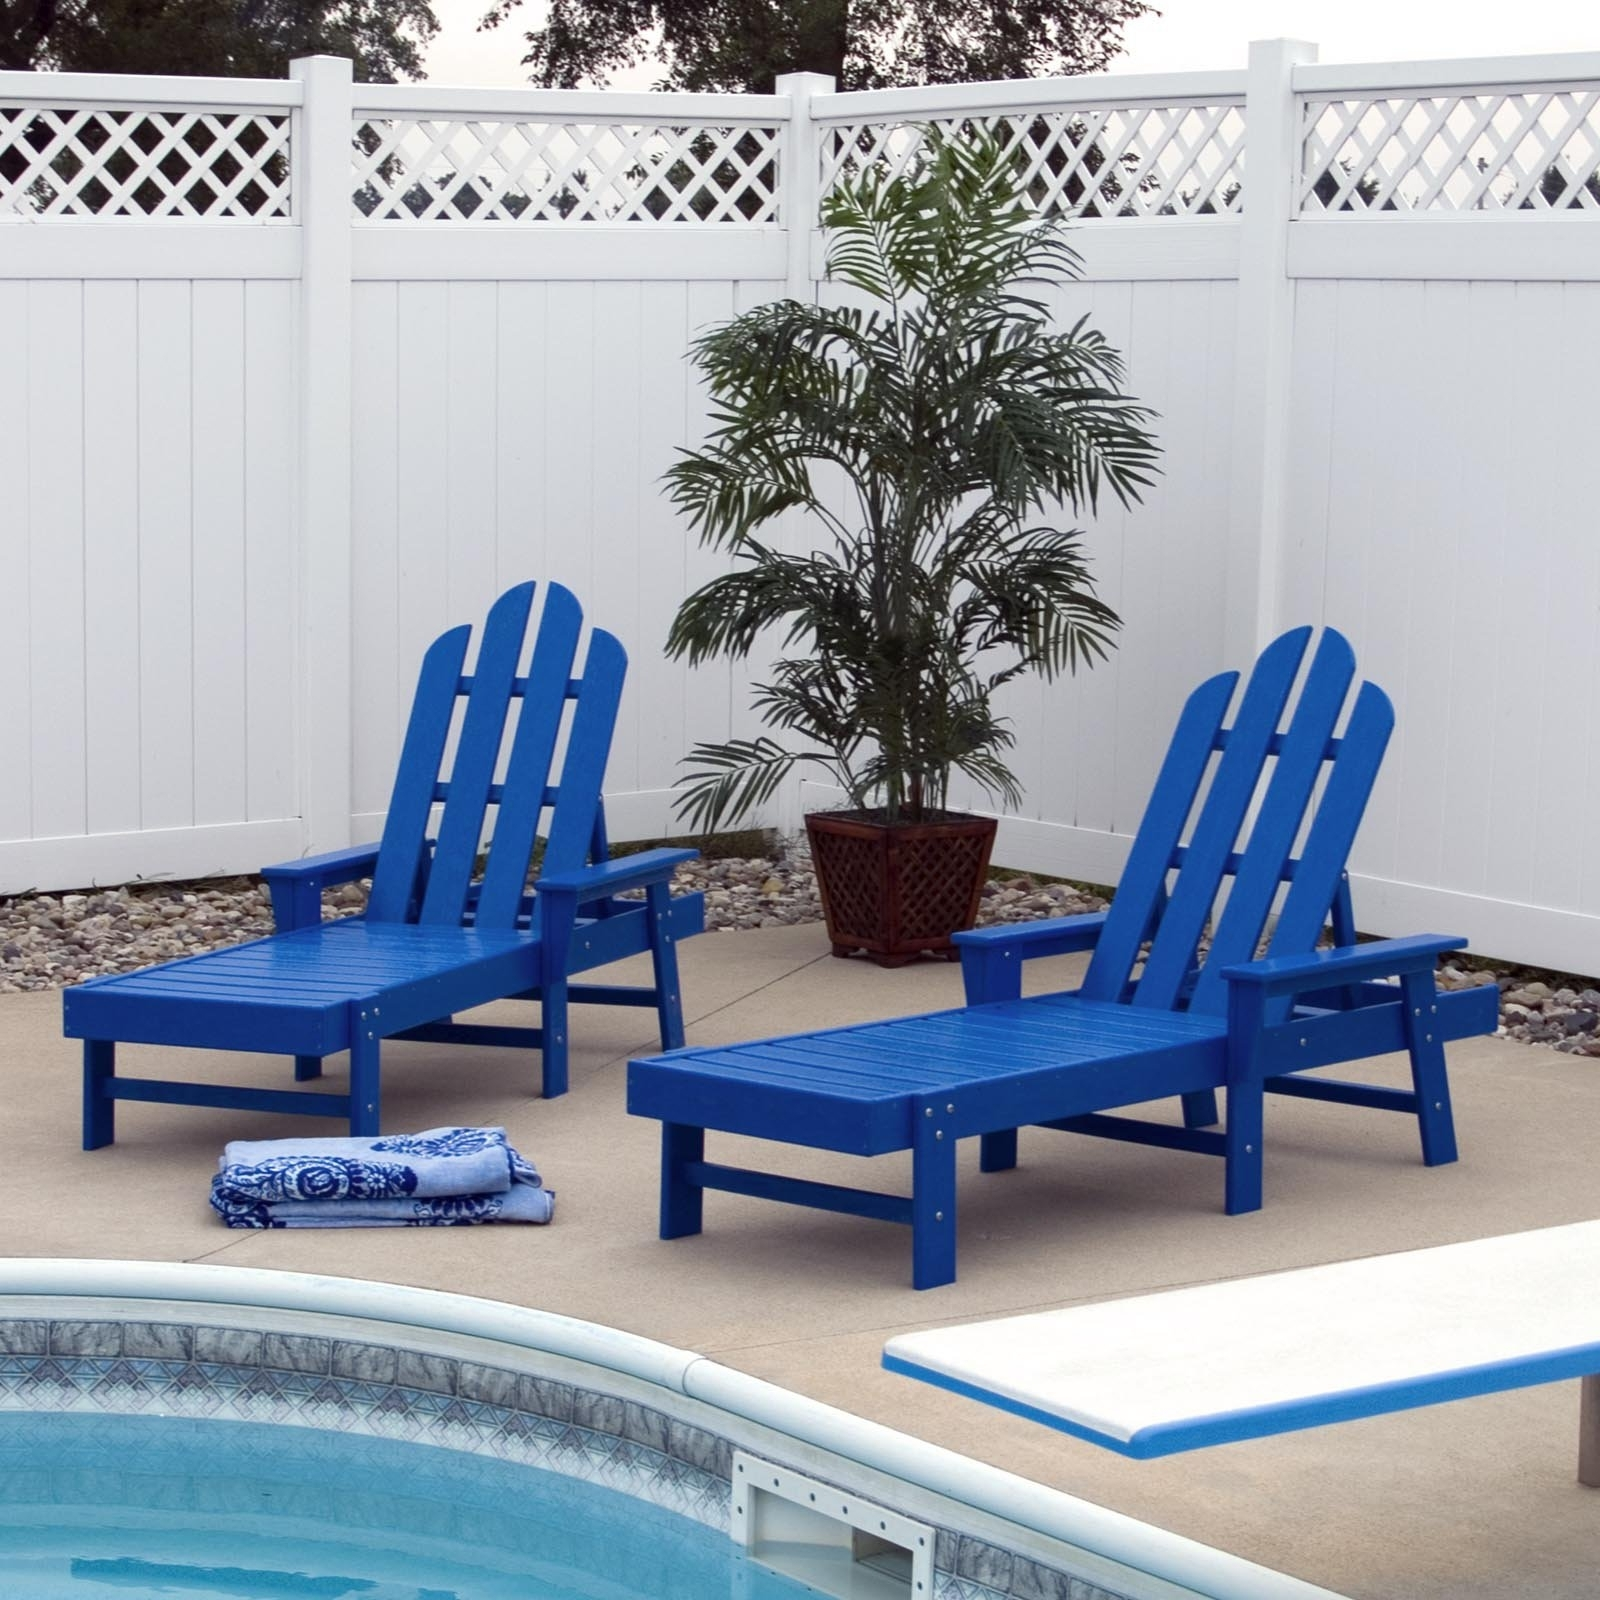 Hayneedle Pertaining To Trendy Polywood Chaise Lounges (View 15 of 15)